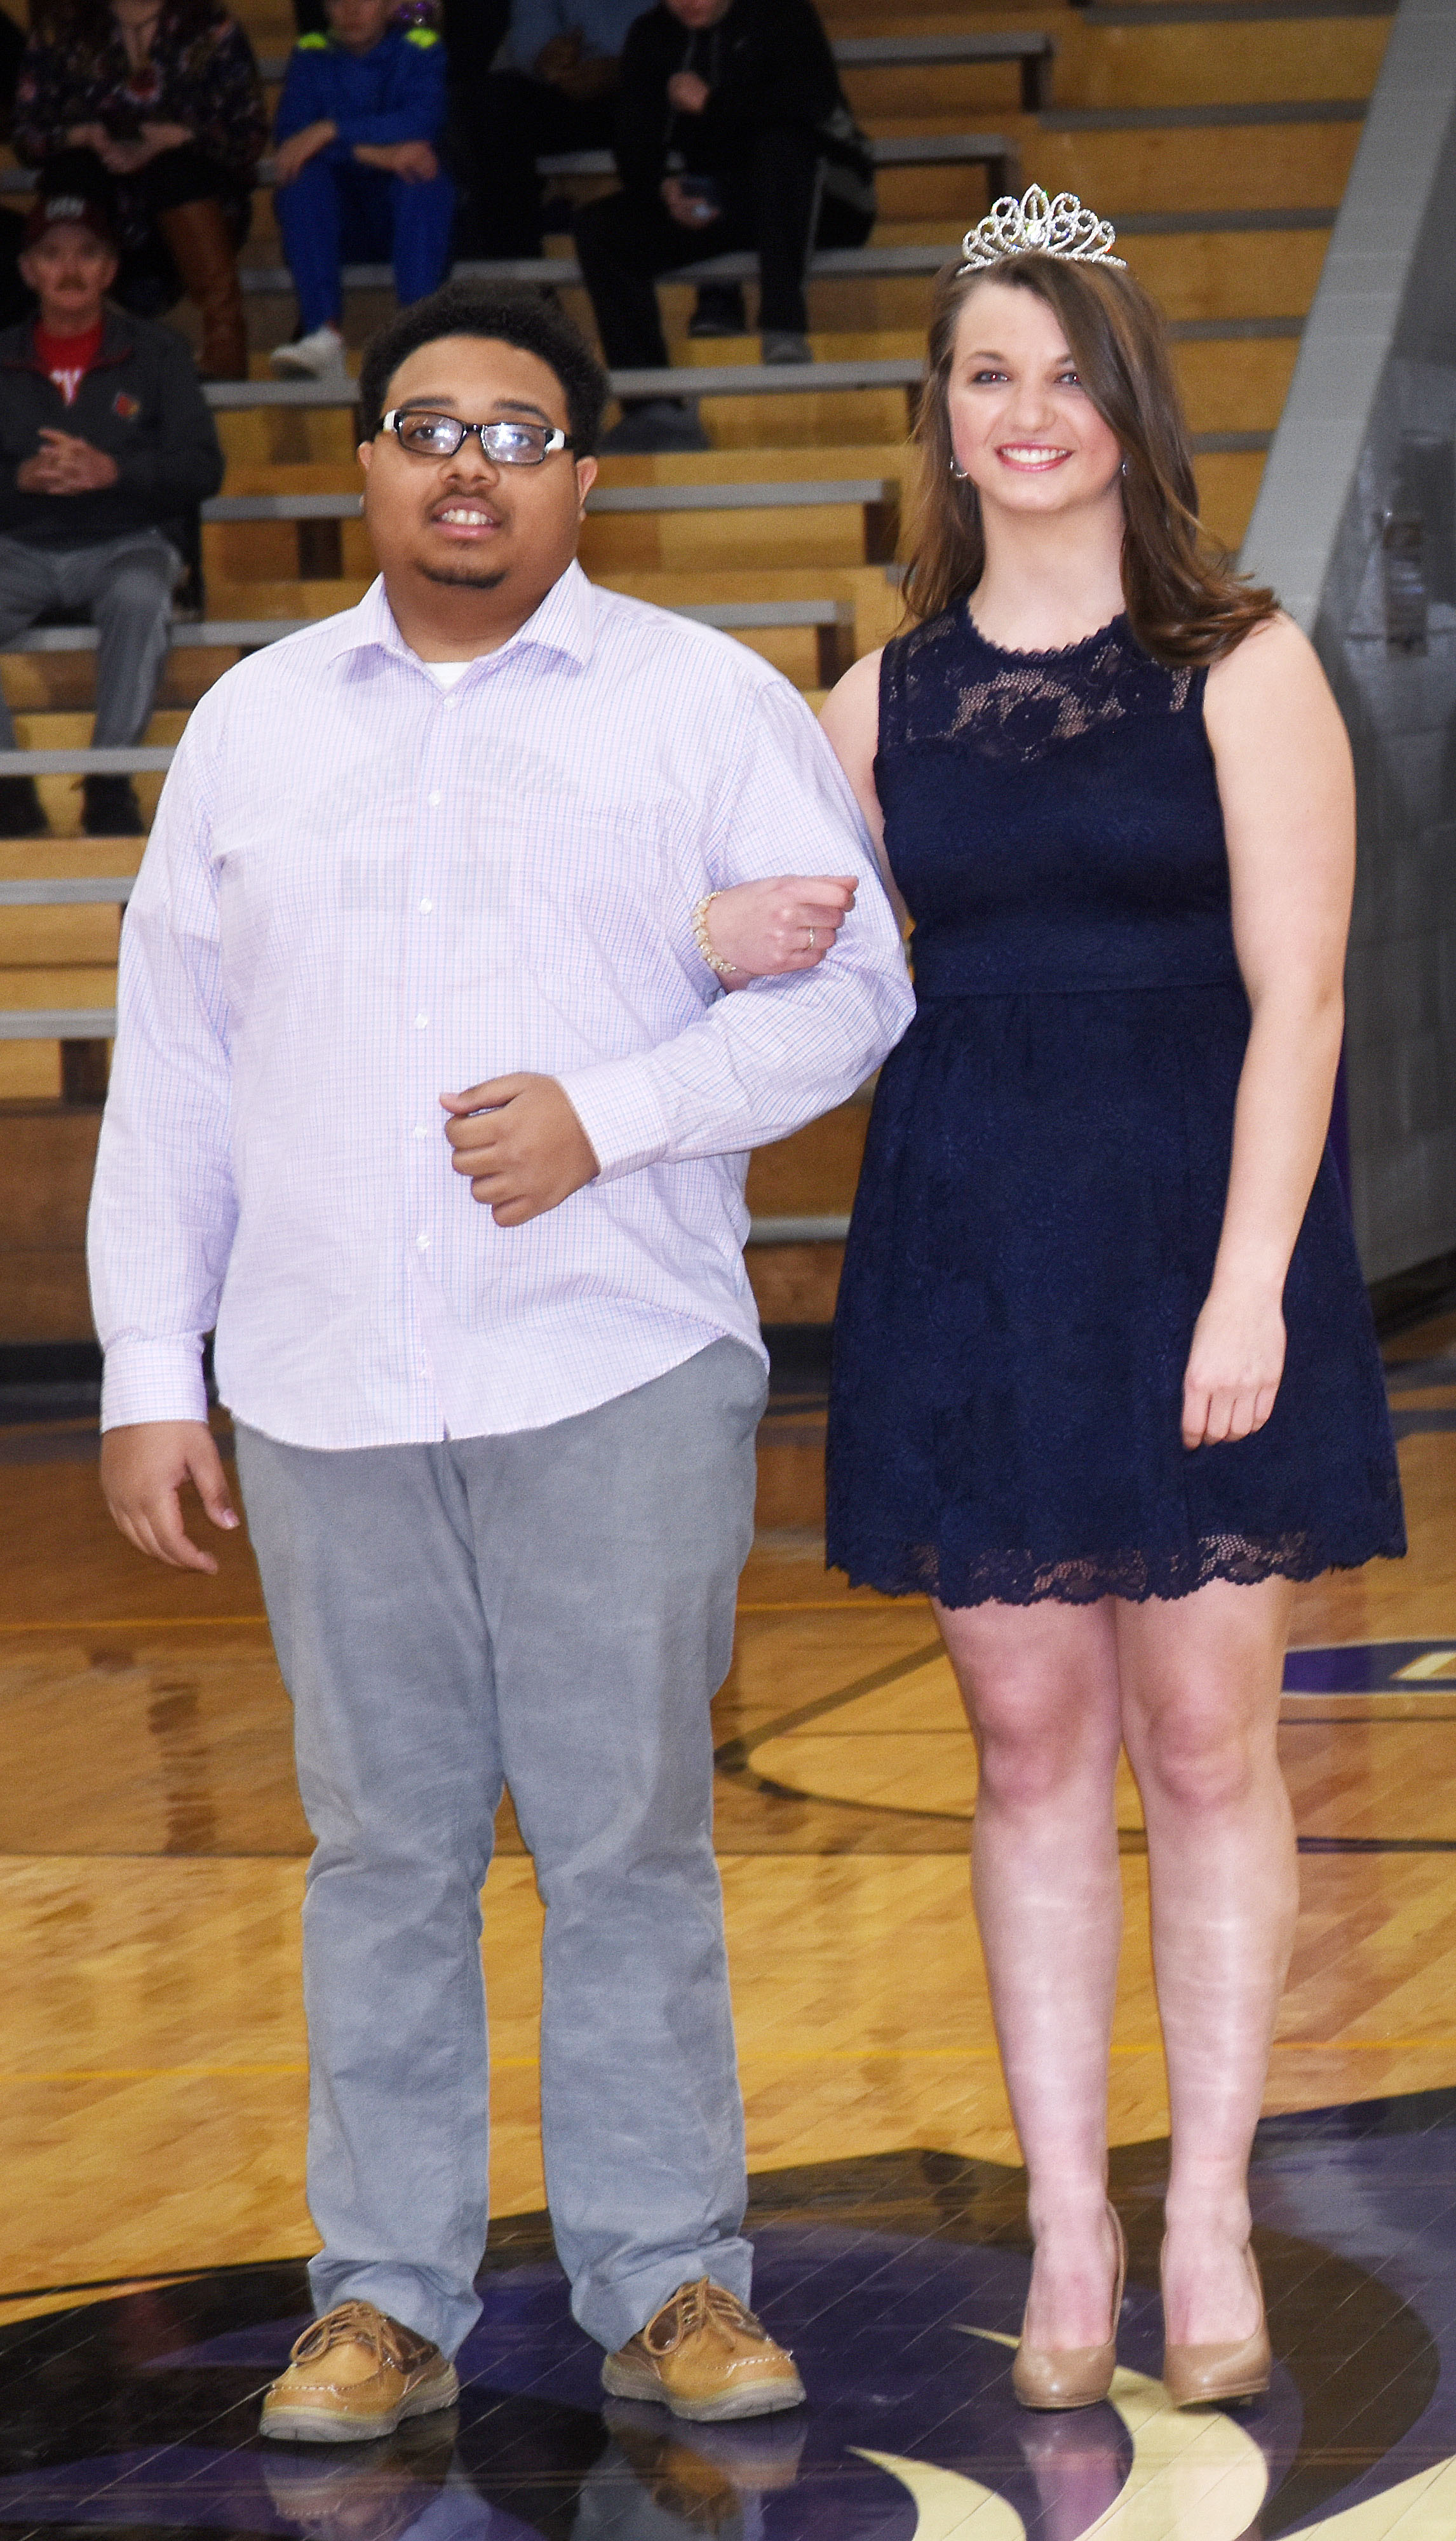 Ricky Smith-Cecil and Caylie Blair, who were named last year's basketball homecoming king and queen and graduated last May, came back to CHS to crown the new king and queen.